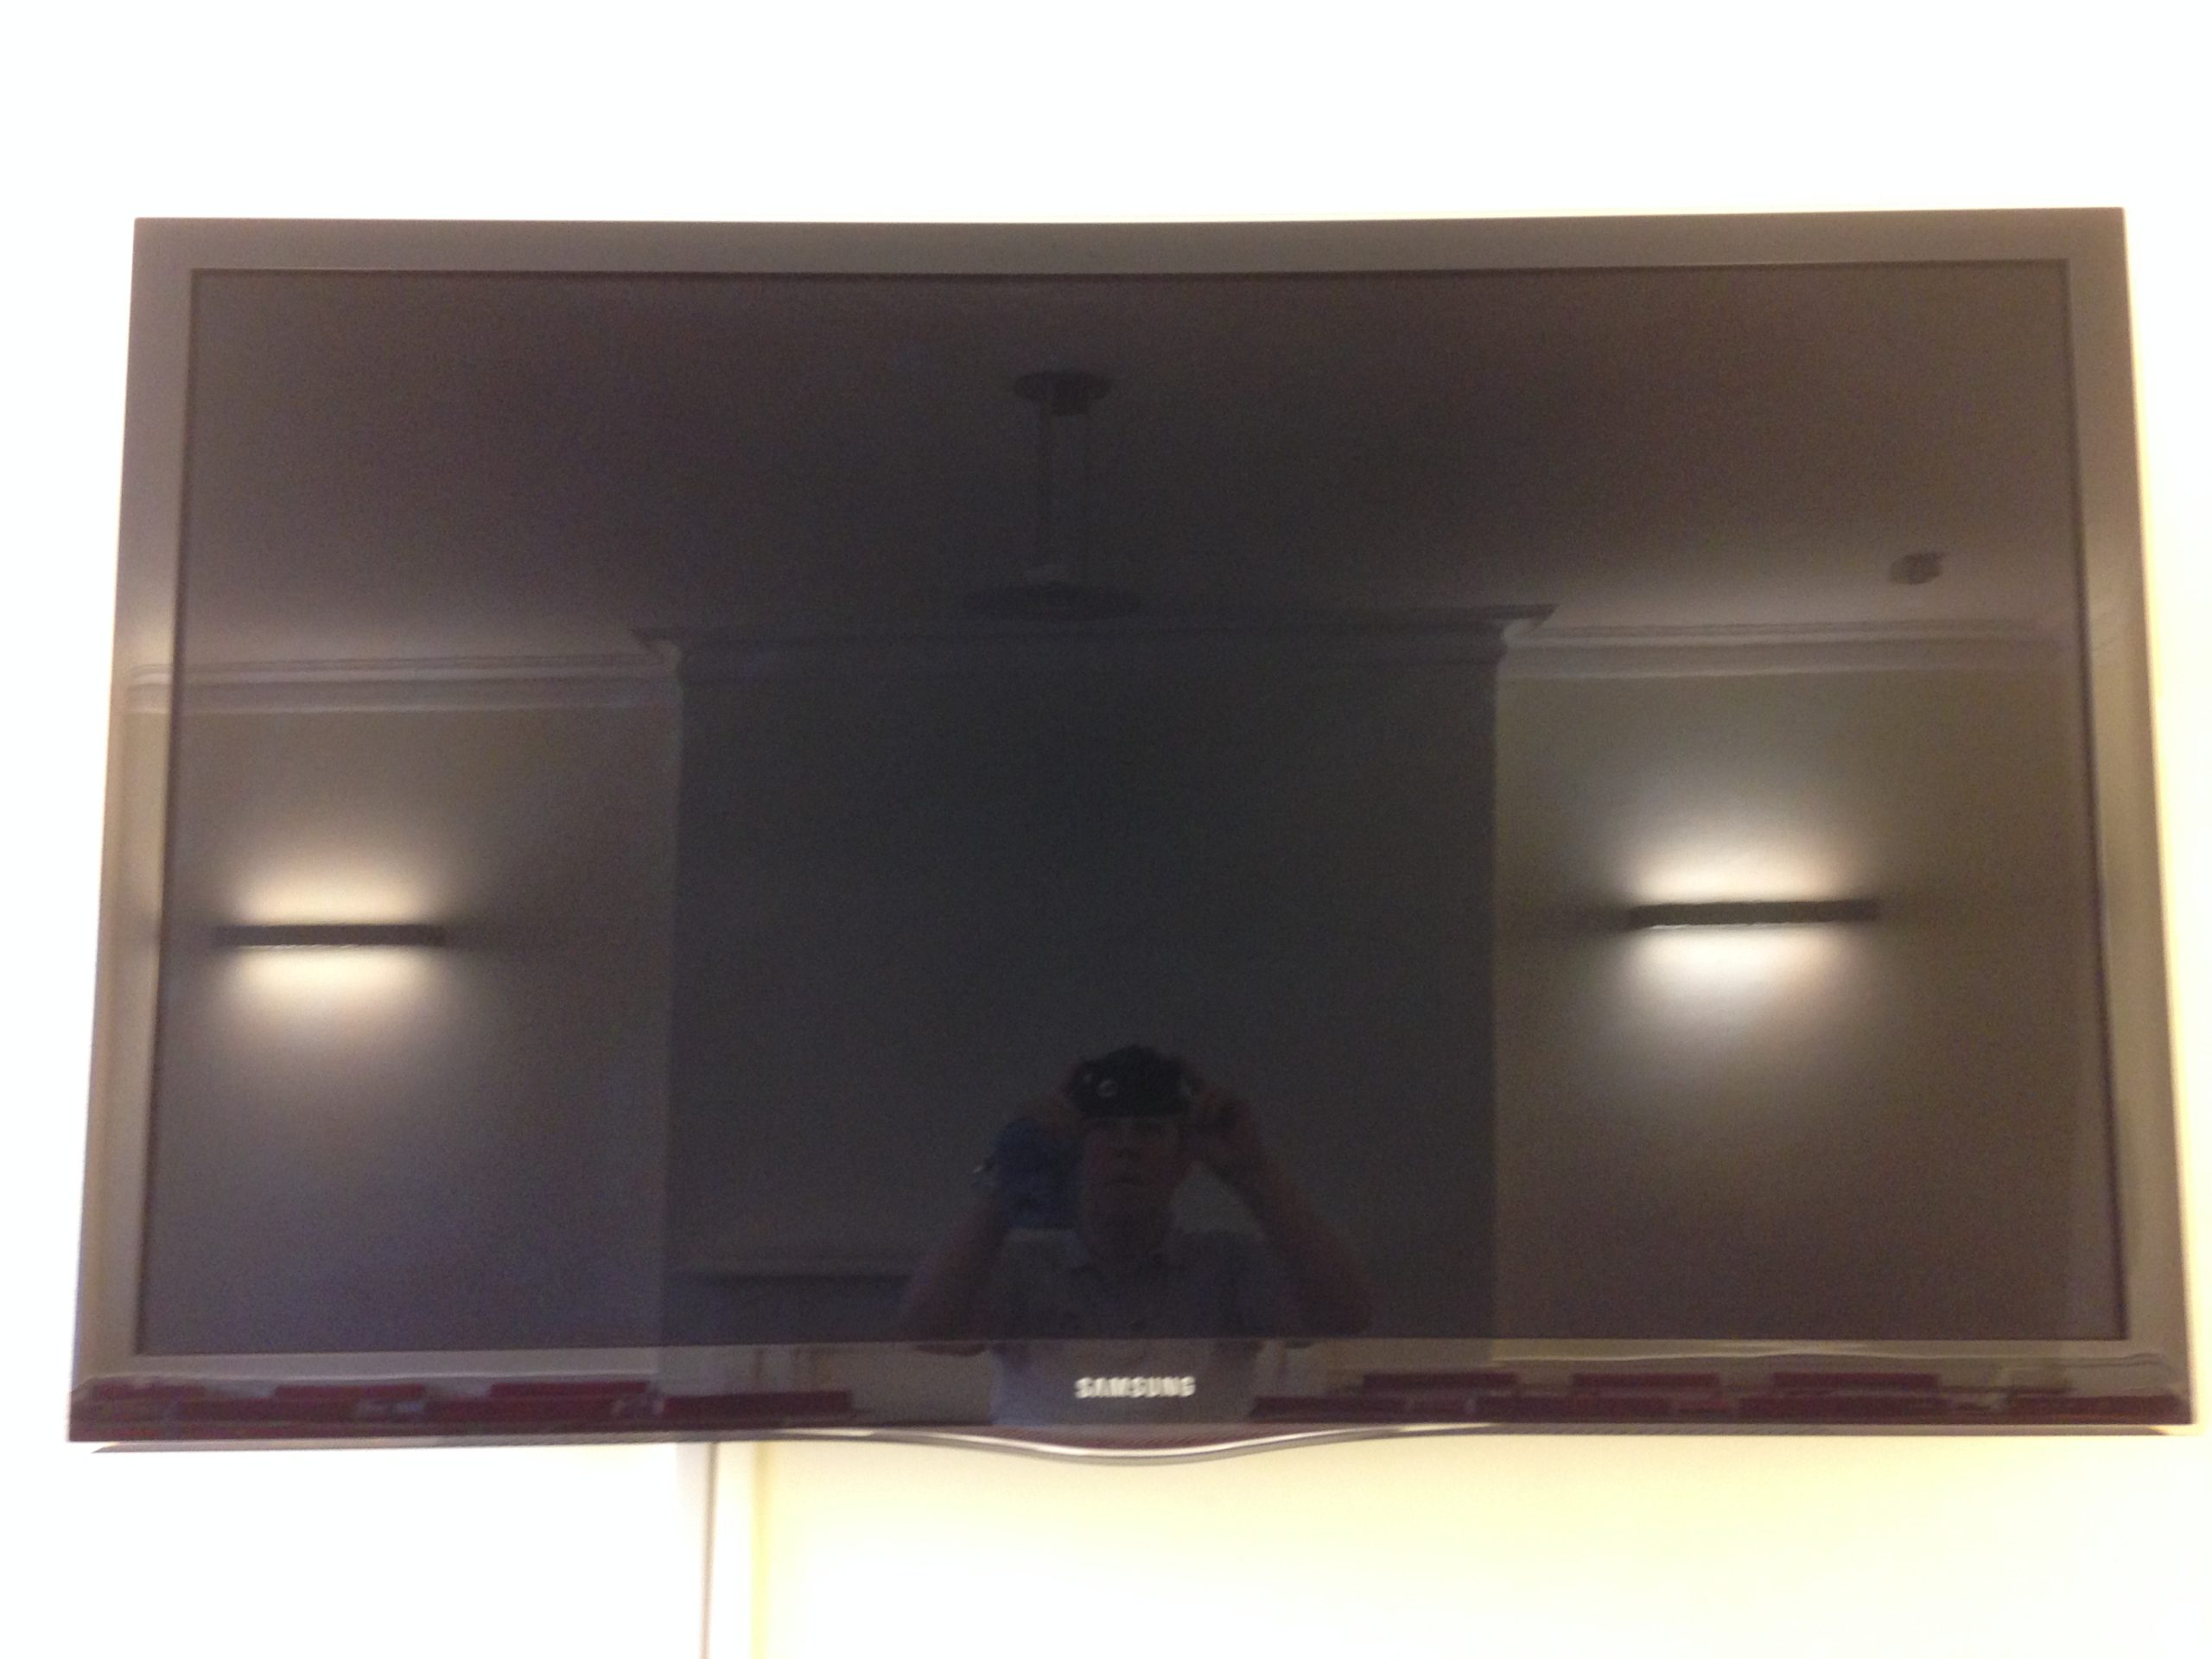 Clean TV After Computer Cleaning Service